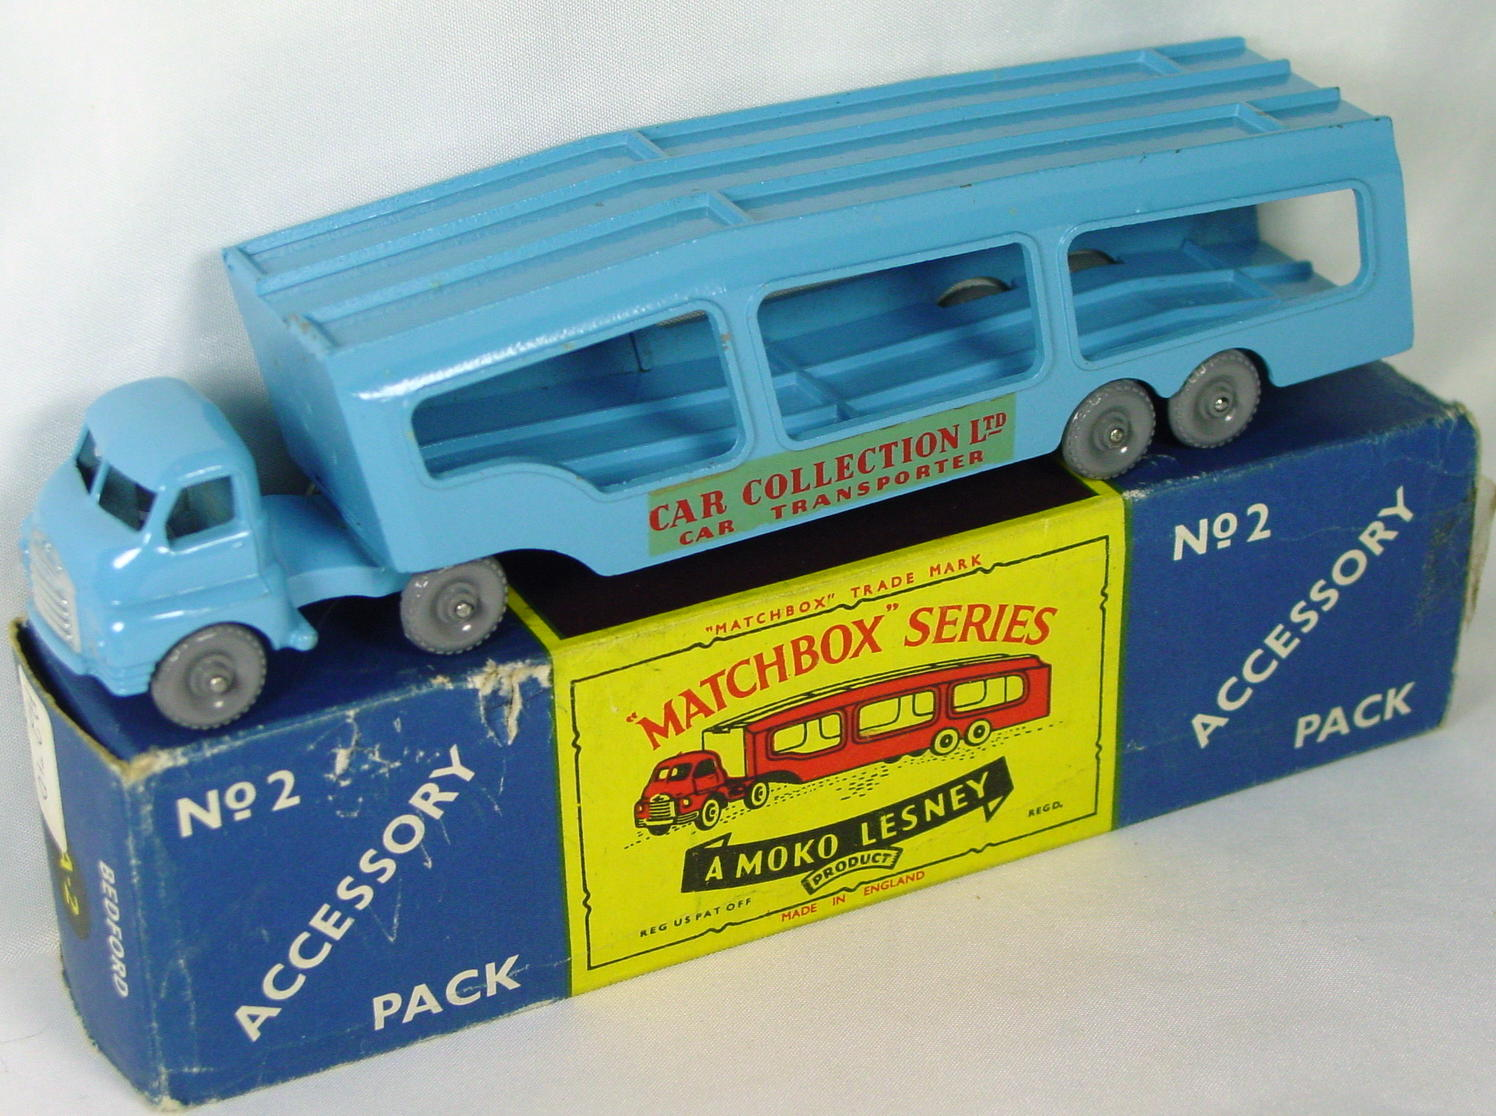 Matchbox 02 A 2 - Transp GW crimped axles red lets 3 chip C8.5 Moko-1flap with tape